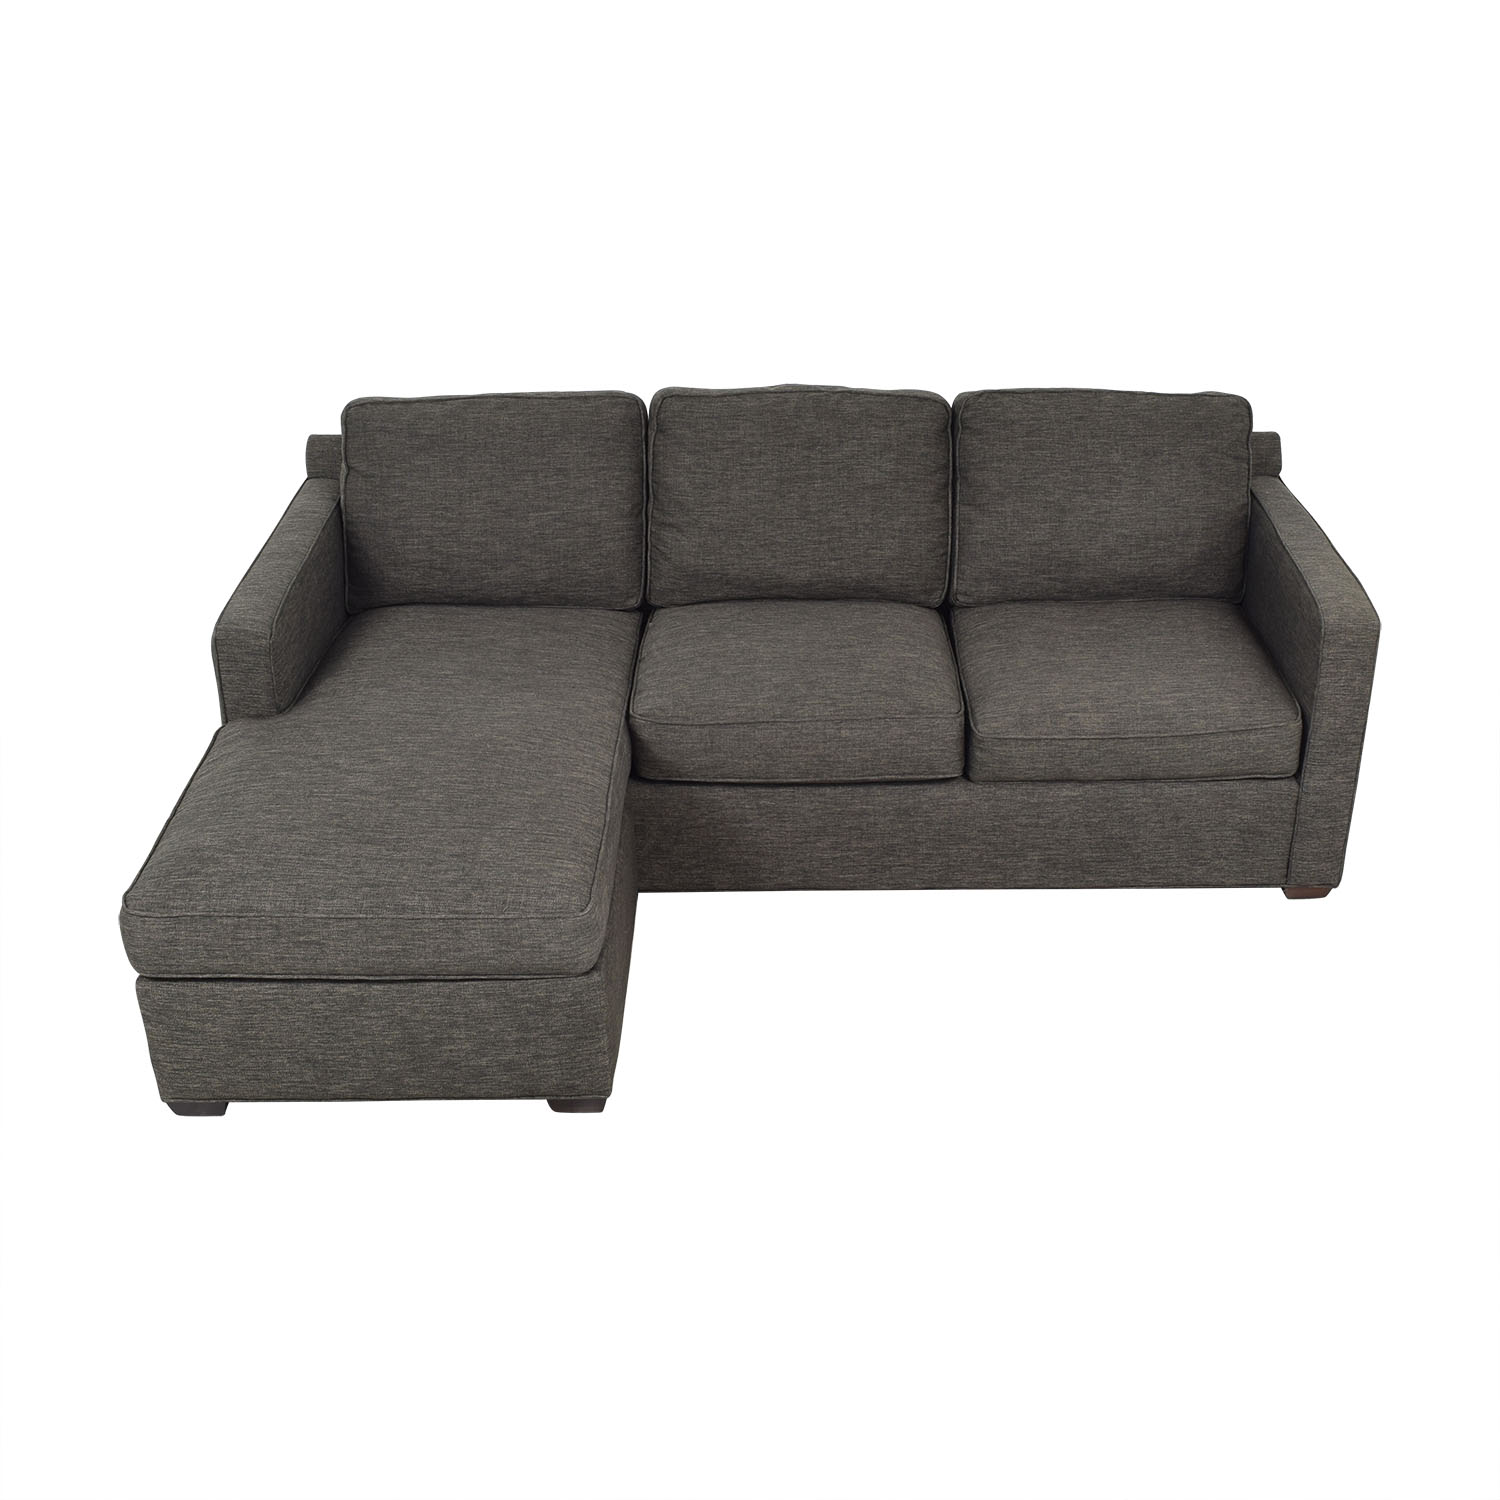 44% OFF - Crate & Barrel Crate & Barrel Reversible Chaise Sofa / Sofas